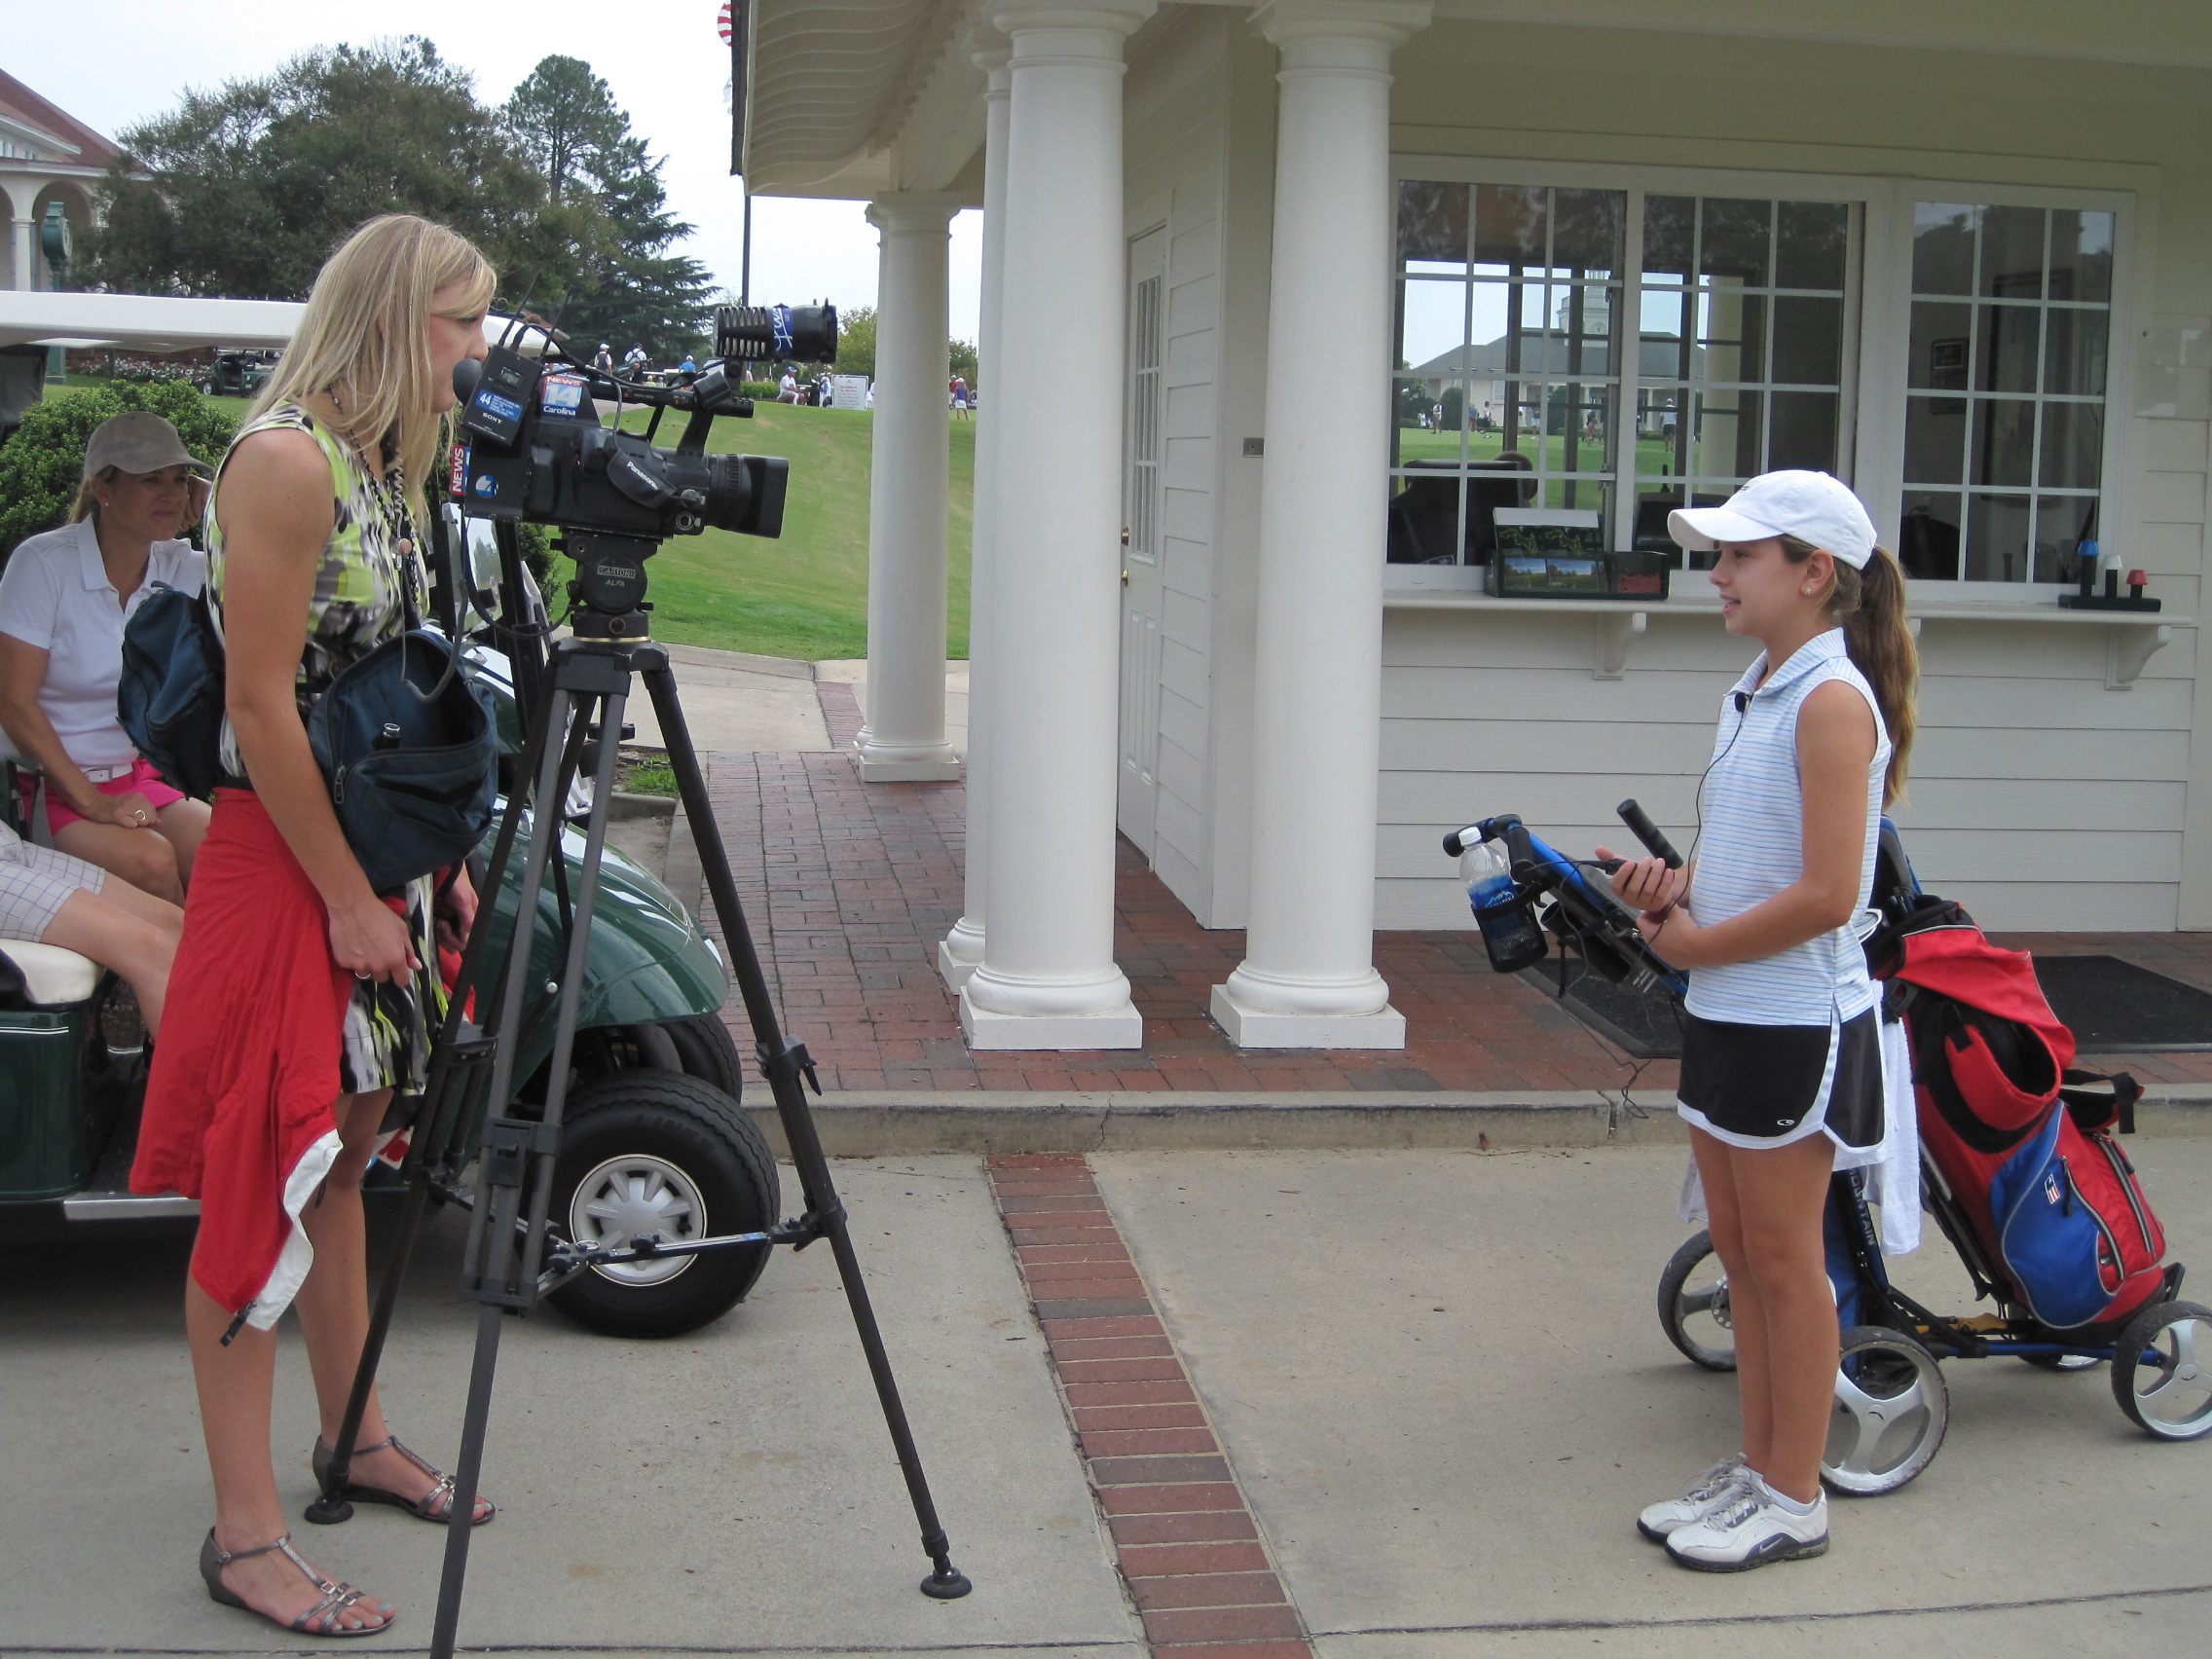 Pinehurst U.S. Kids News 14